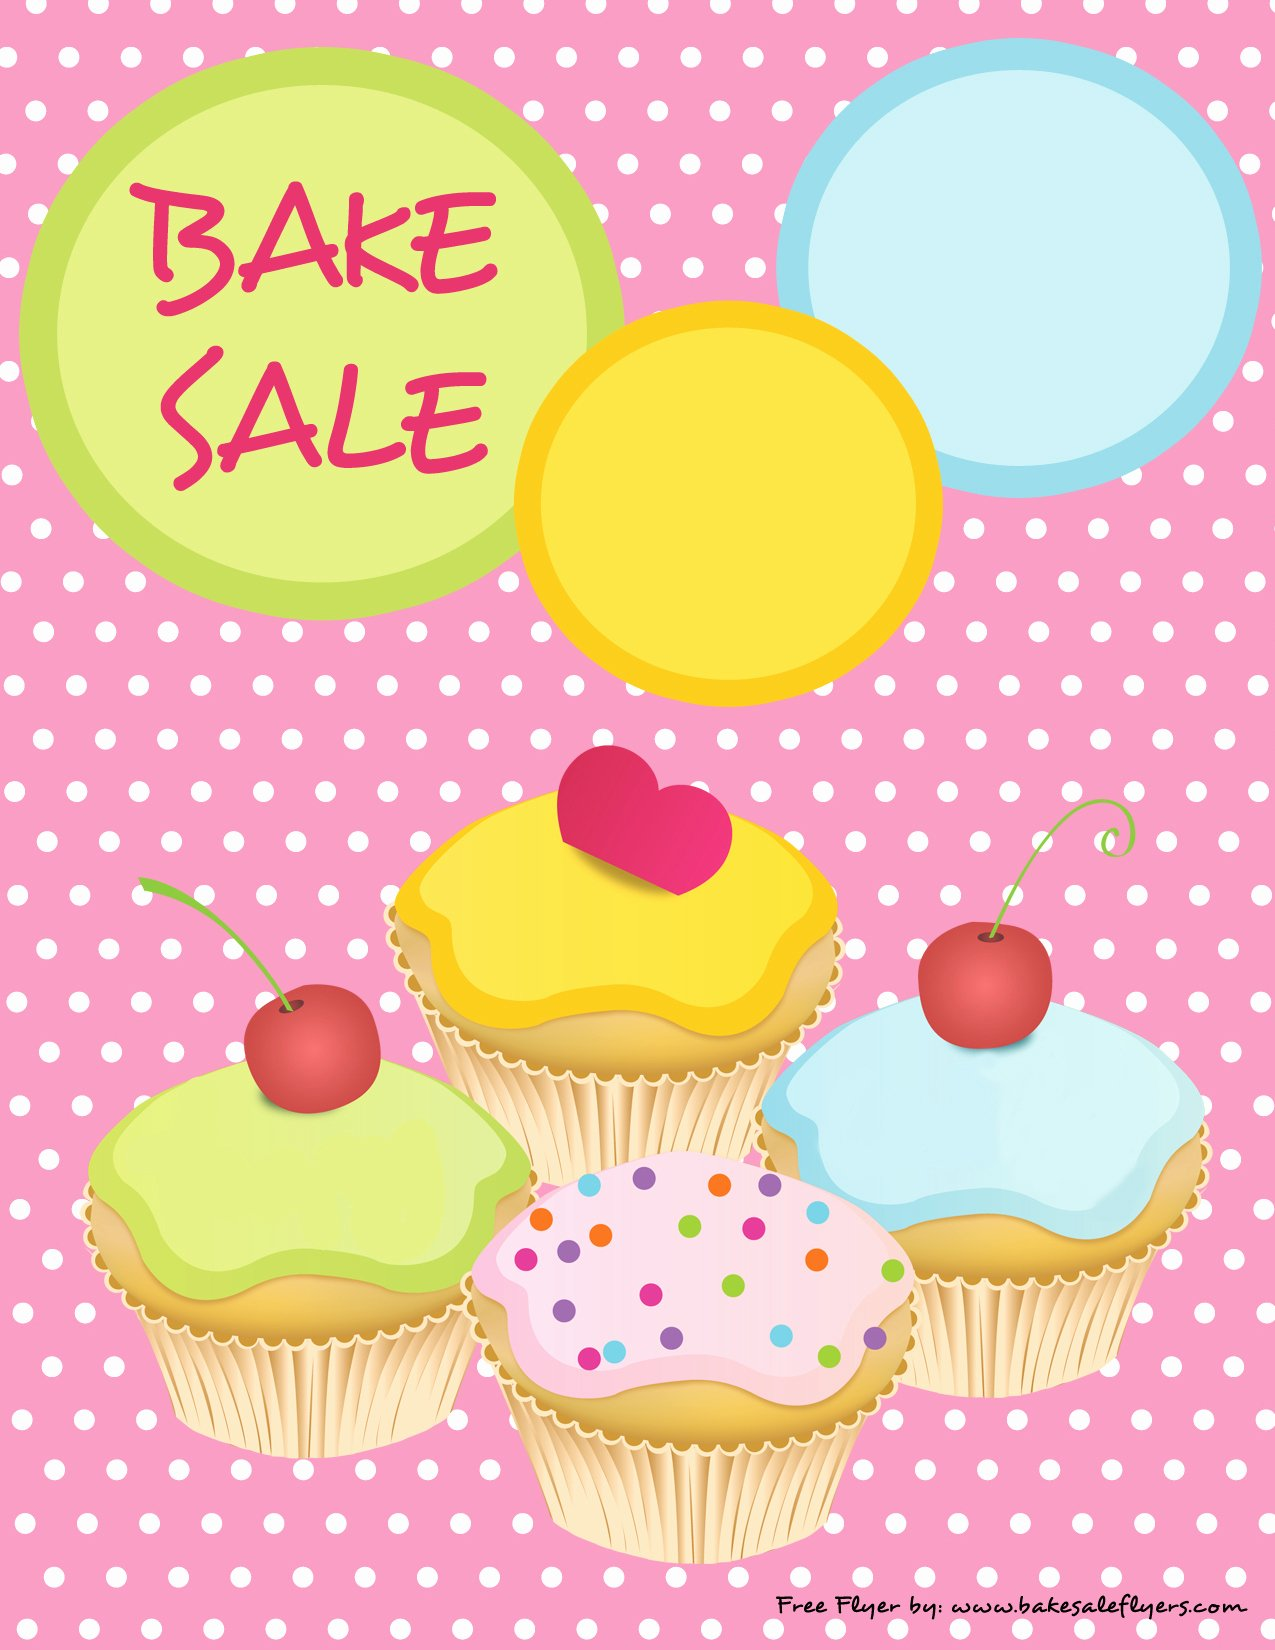 Free Bake Sale Template Elegant Bake Sale Flyers – Free Flyer Designs